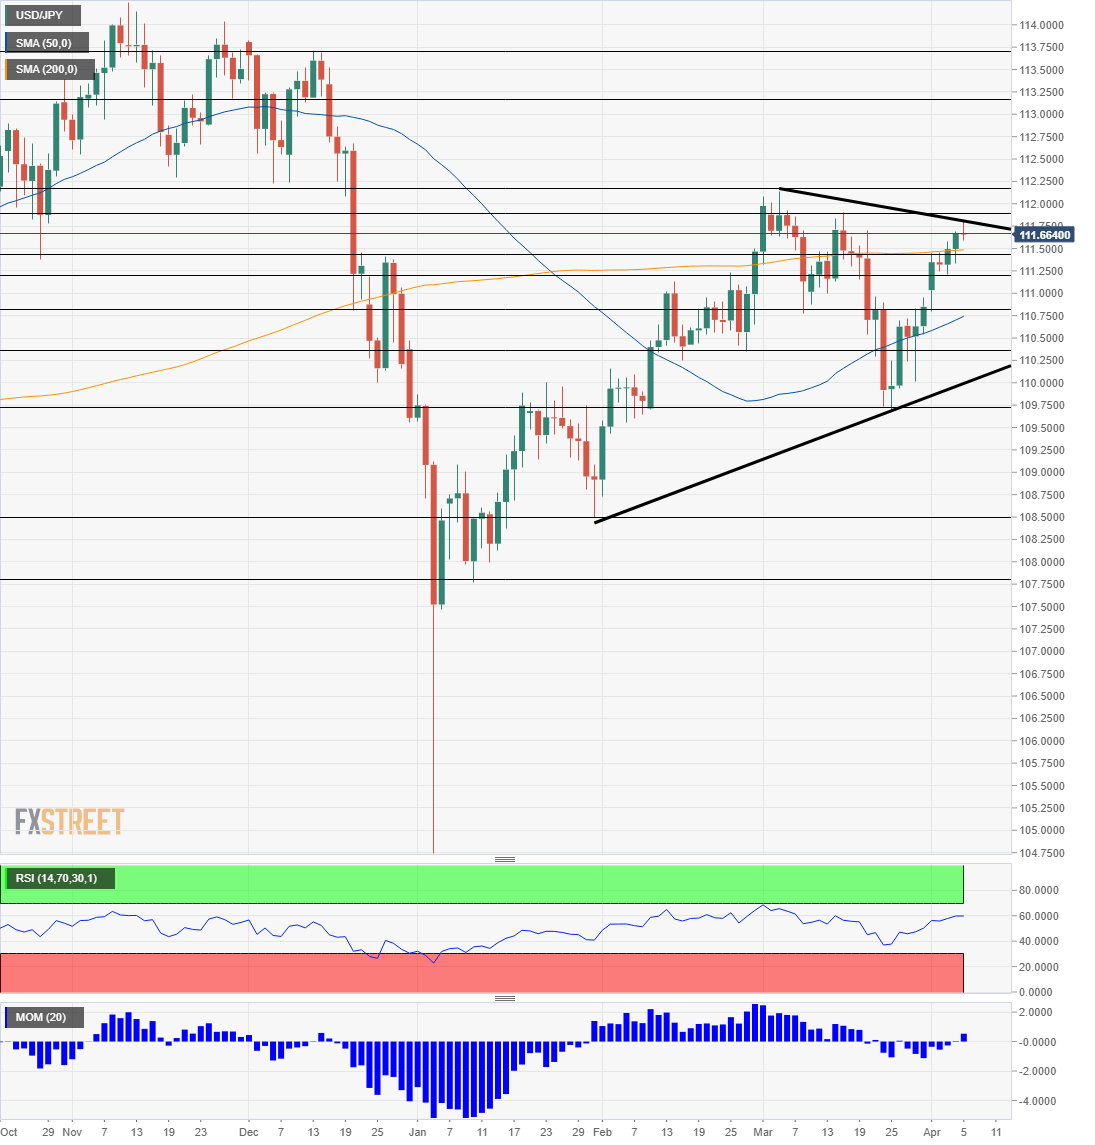 Dollar yen technical analysis April 8 12 2019